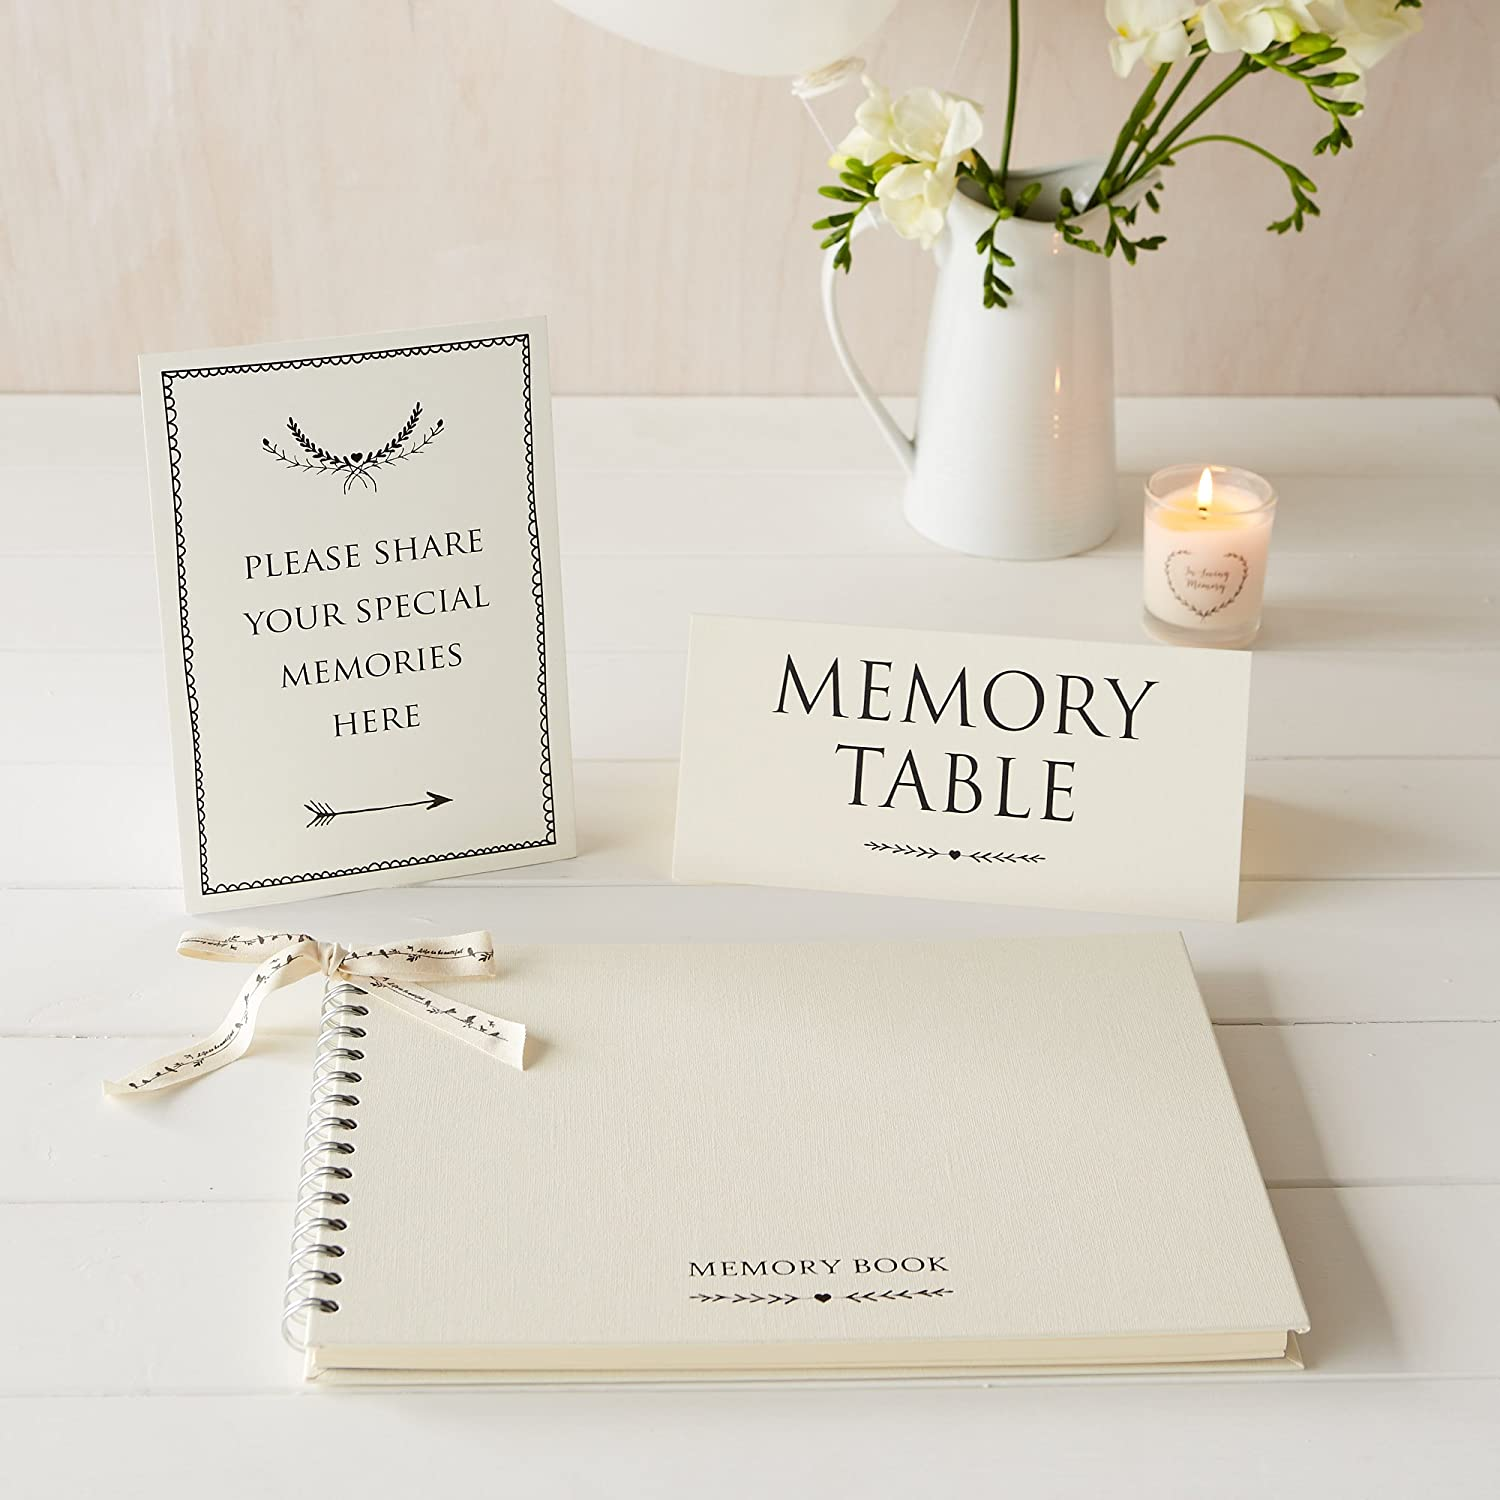 Angel & Dove Luxury A4 Memory Book & 2 Signs Set - 'Please Share Your Special Memories Here' & 'Memory Table' - Ideal for Funeral Condolence Book, Memorial, Remembrance, Celebration of Life